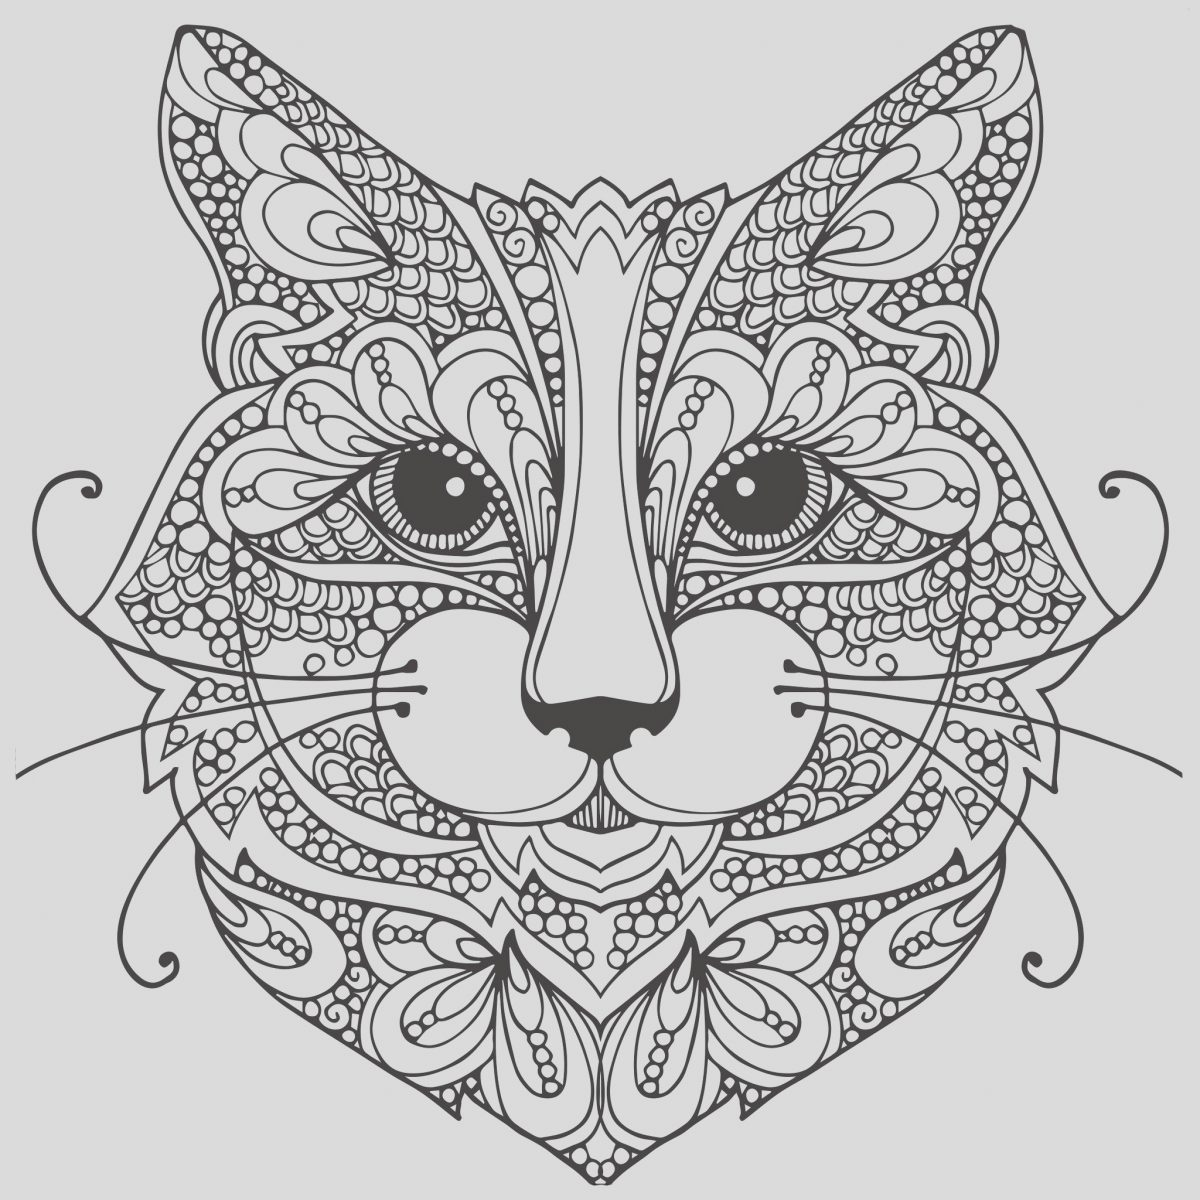 Cat Adult Coloring Page Luxury Adult Coloring Pages Cat 1 Coloring Pages